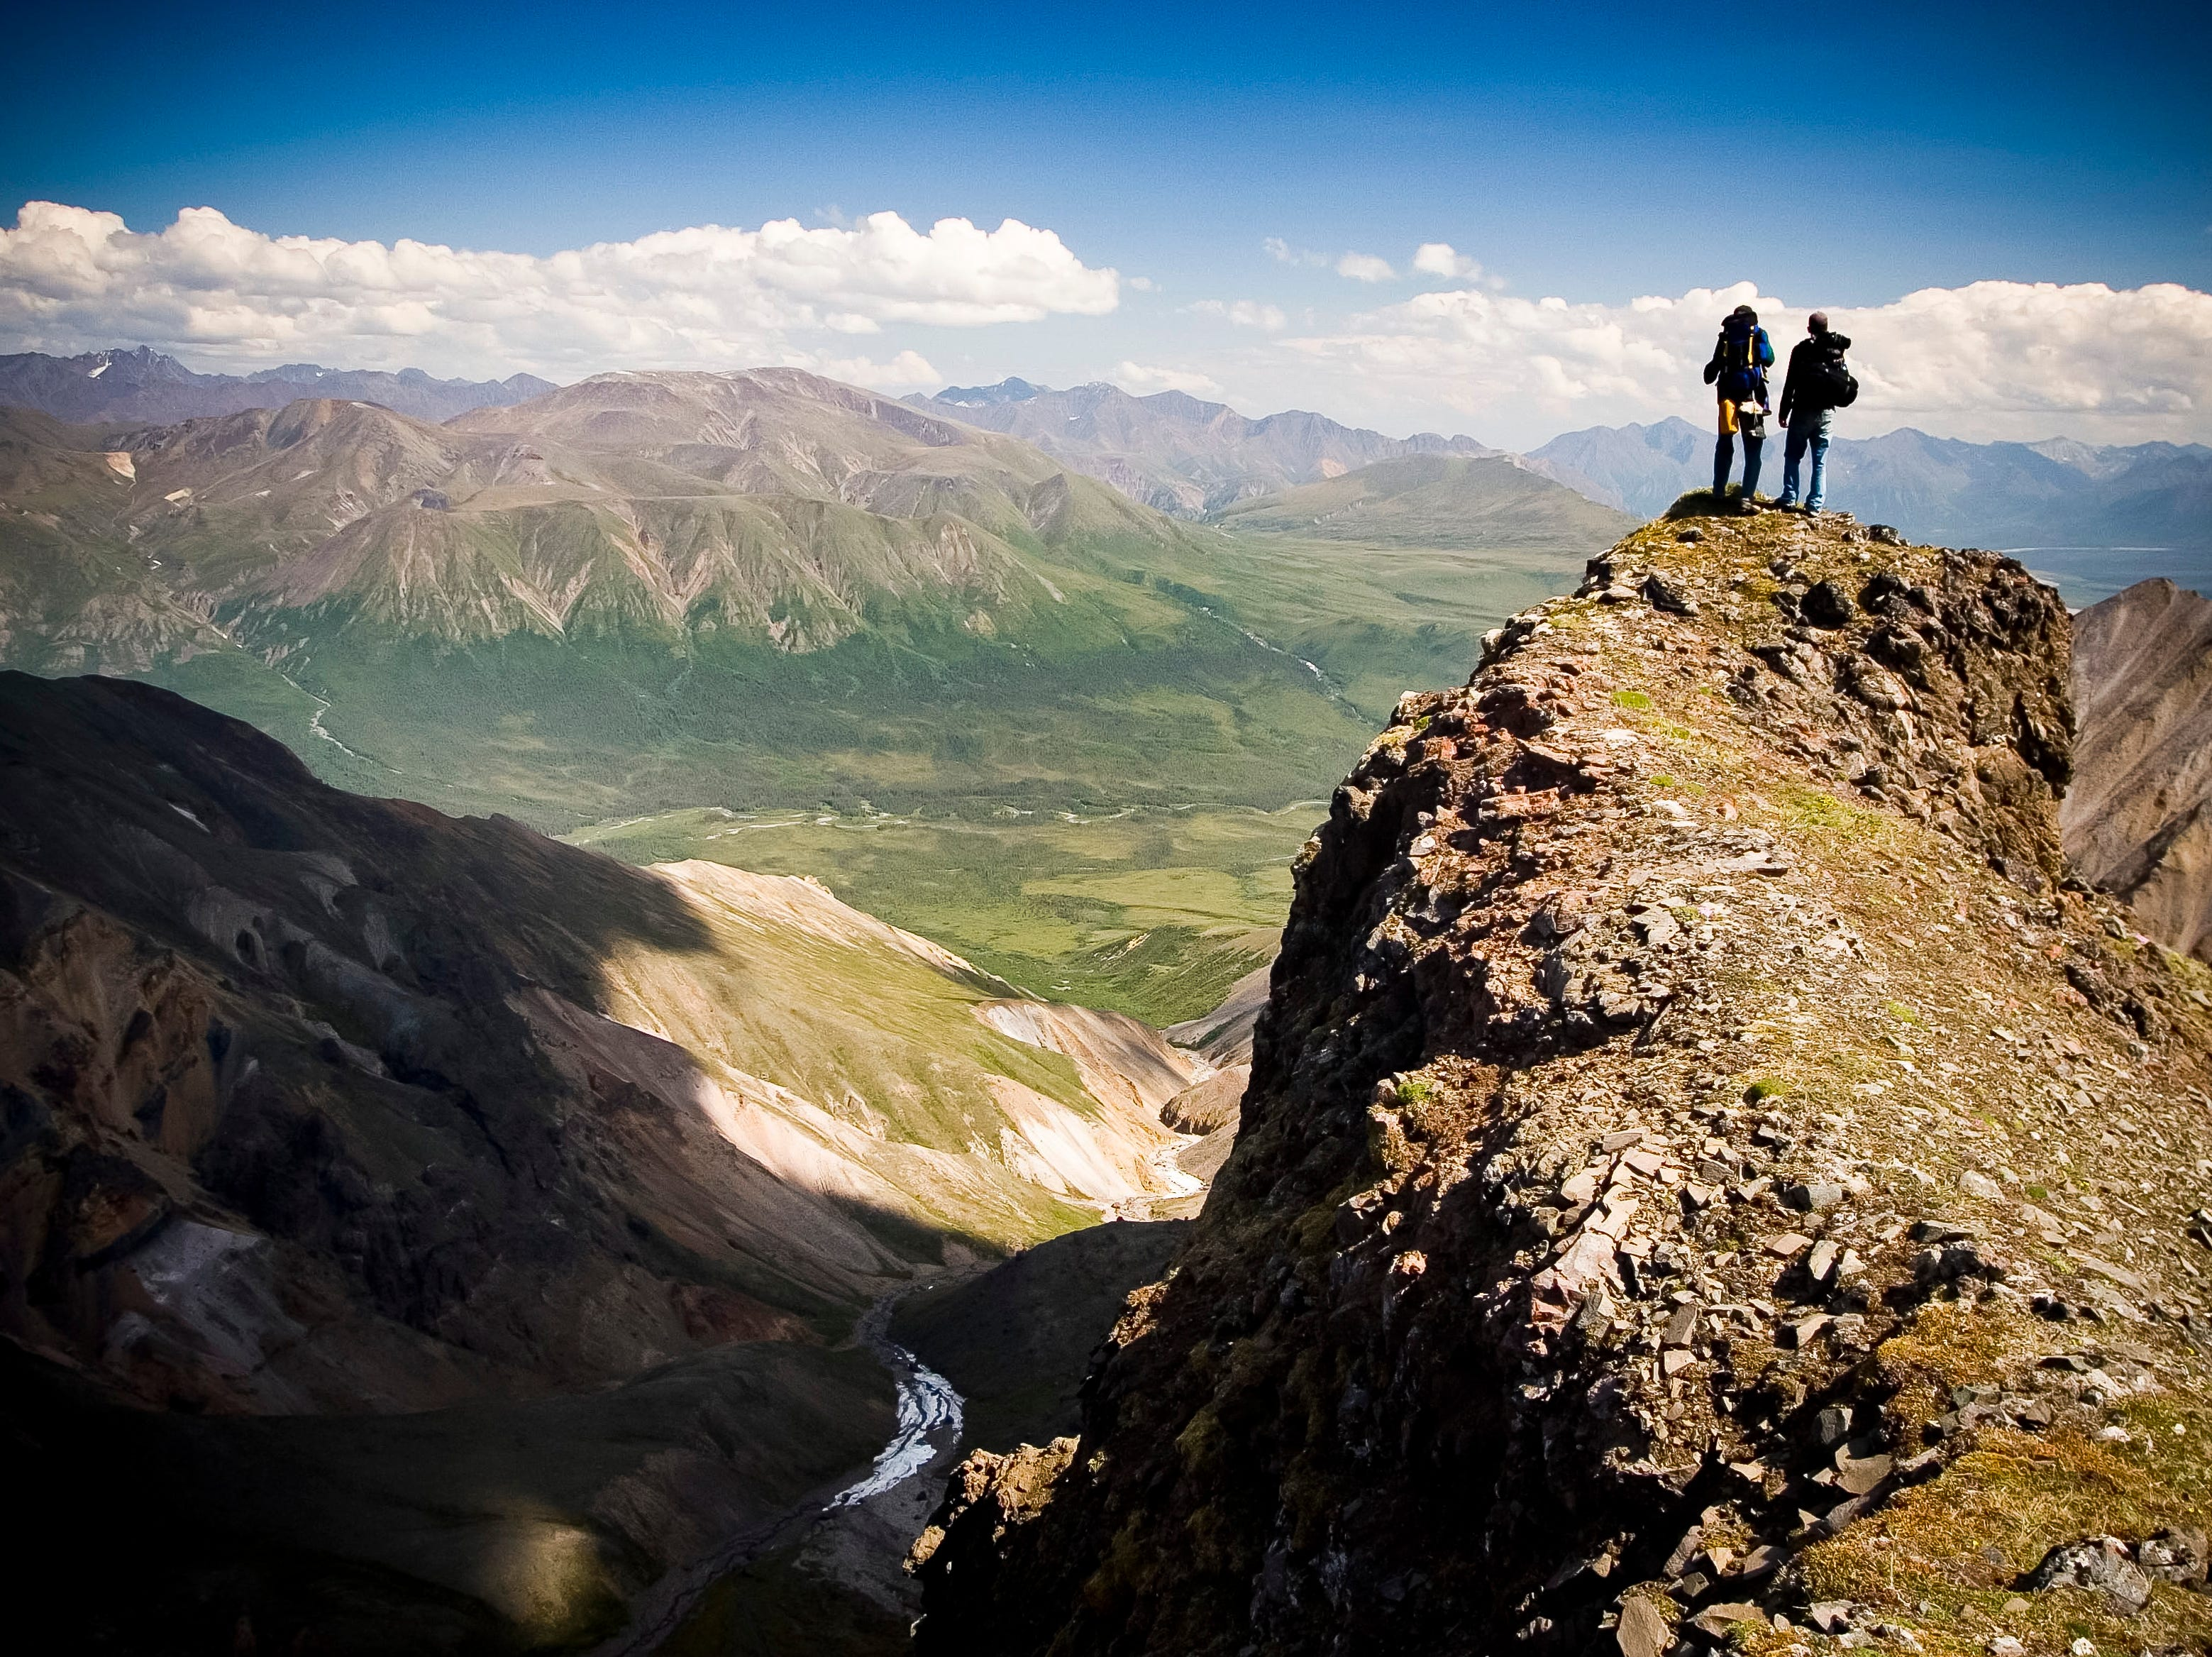 Skookum Volcano Trail in the Wrangell-St. Elias National Park. Photo via NPS [Via MerlinFTP Drop]